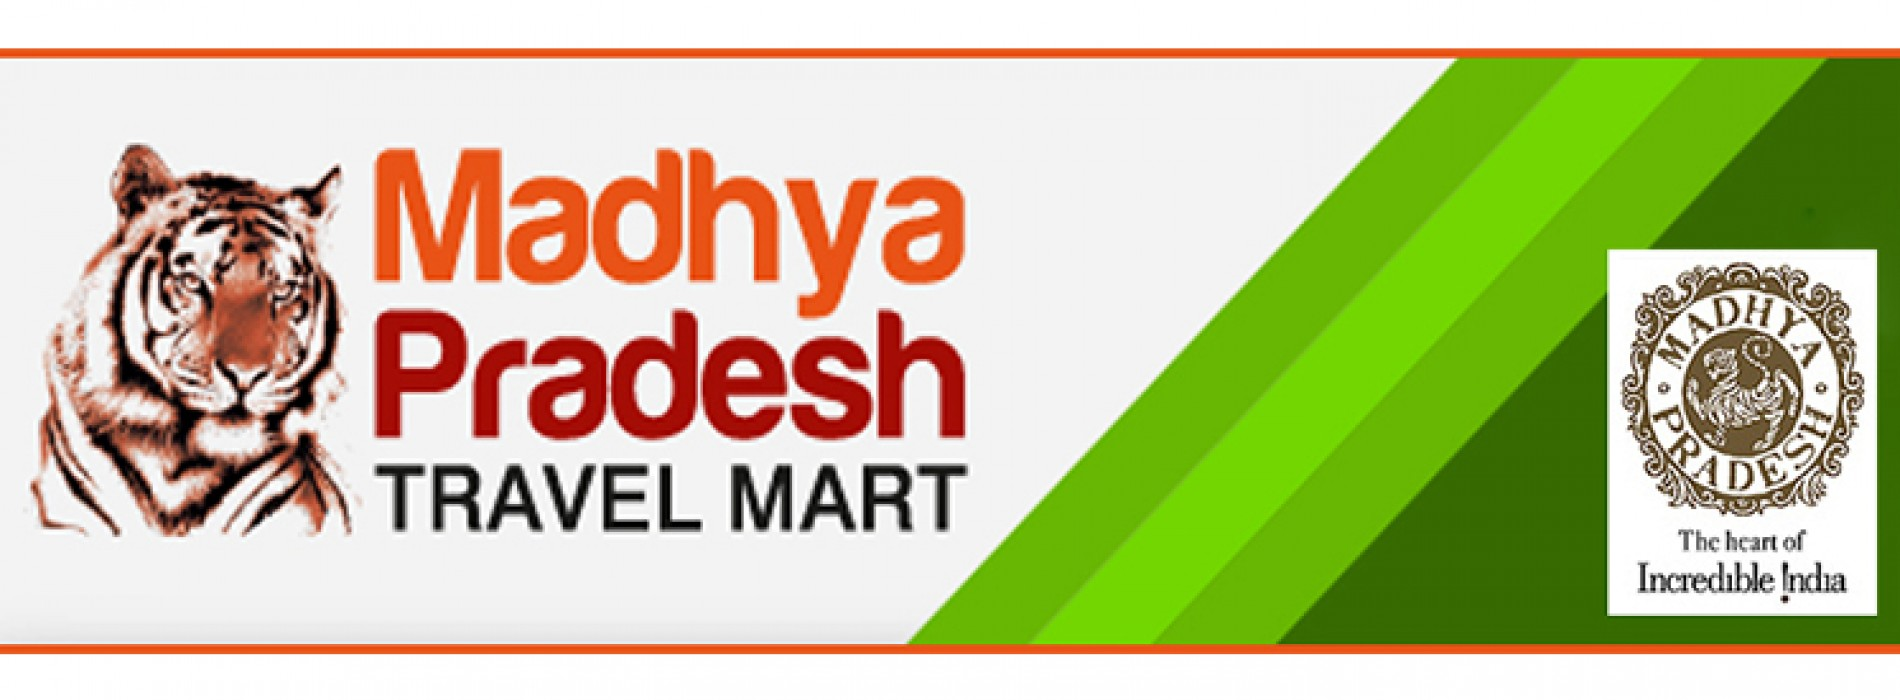 MP Tourism to organise 2nd edition of 'Madhya Pradesh Travel Mart'